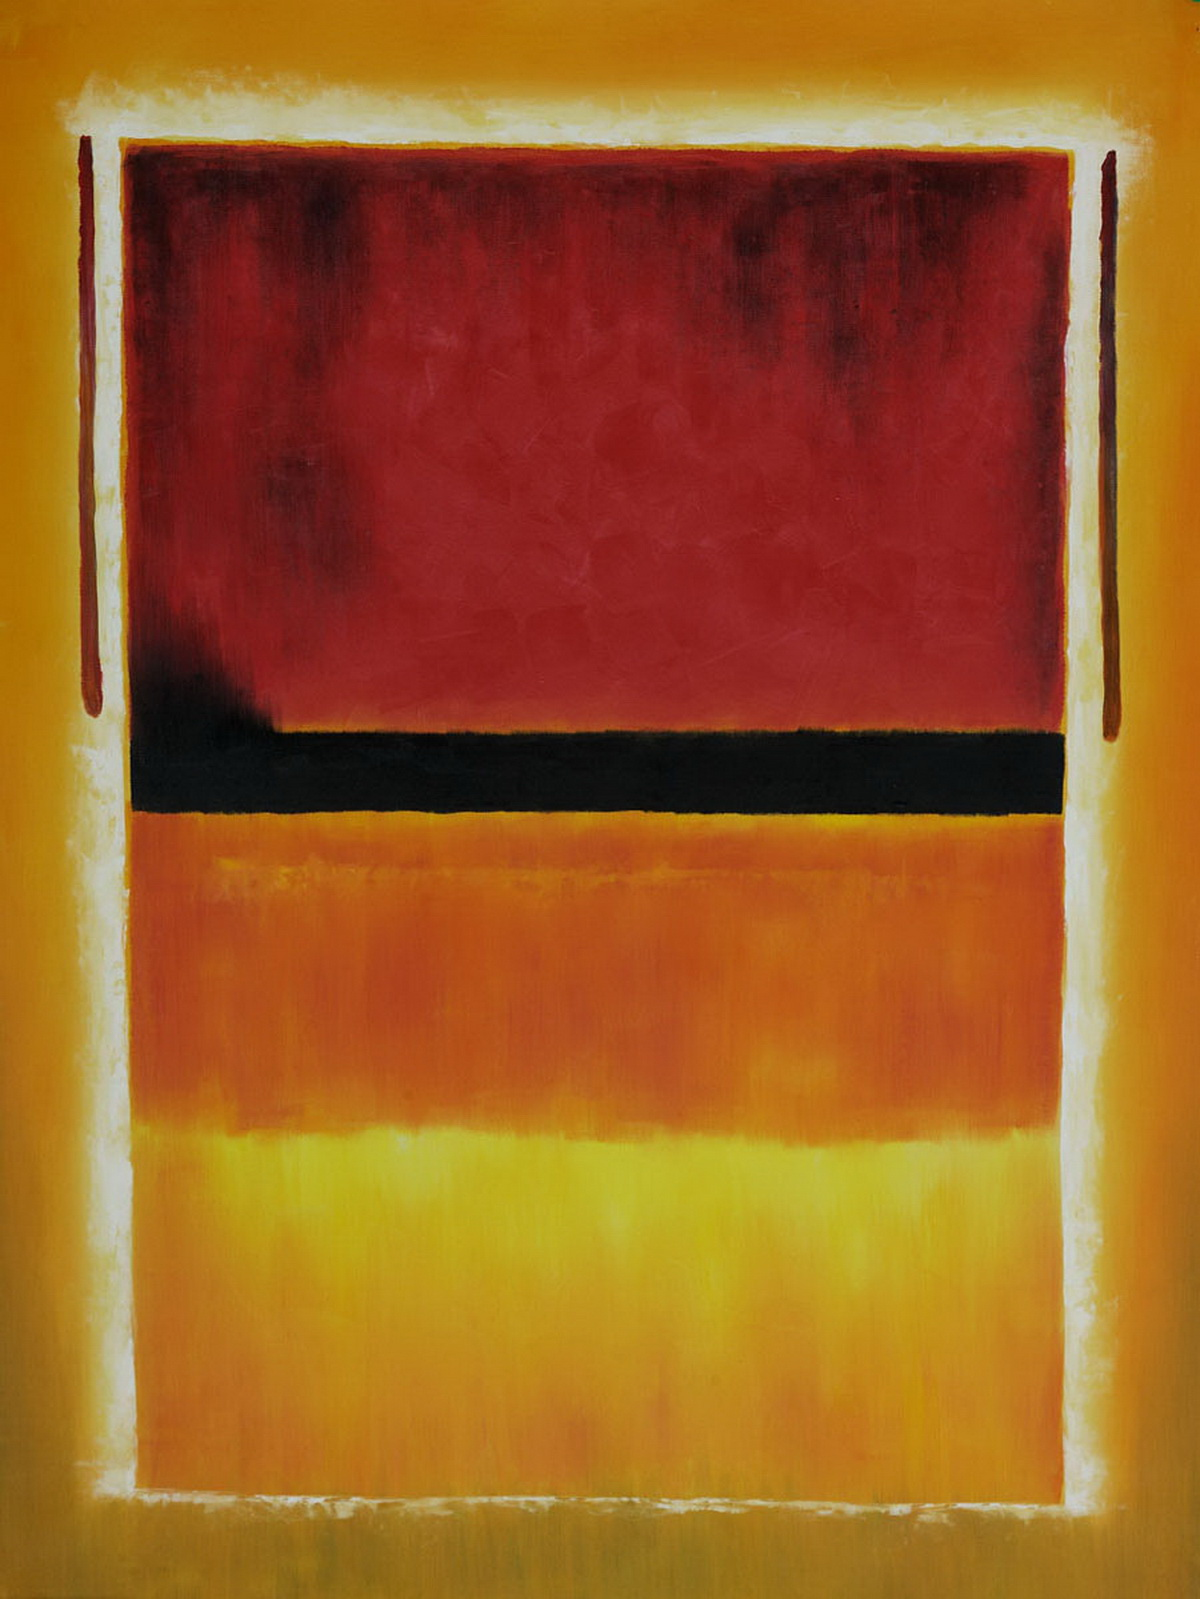 http://s5.picofile.com/file/8115961326/Untitled_1949_by_Mark_Rothko.jpg